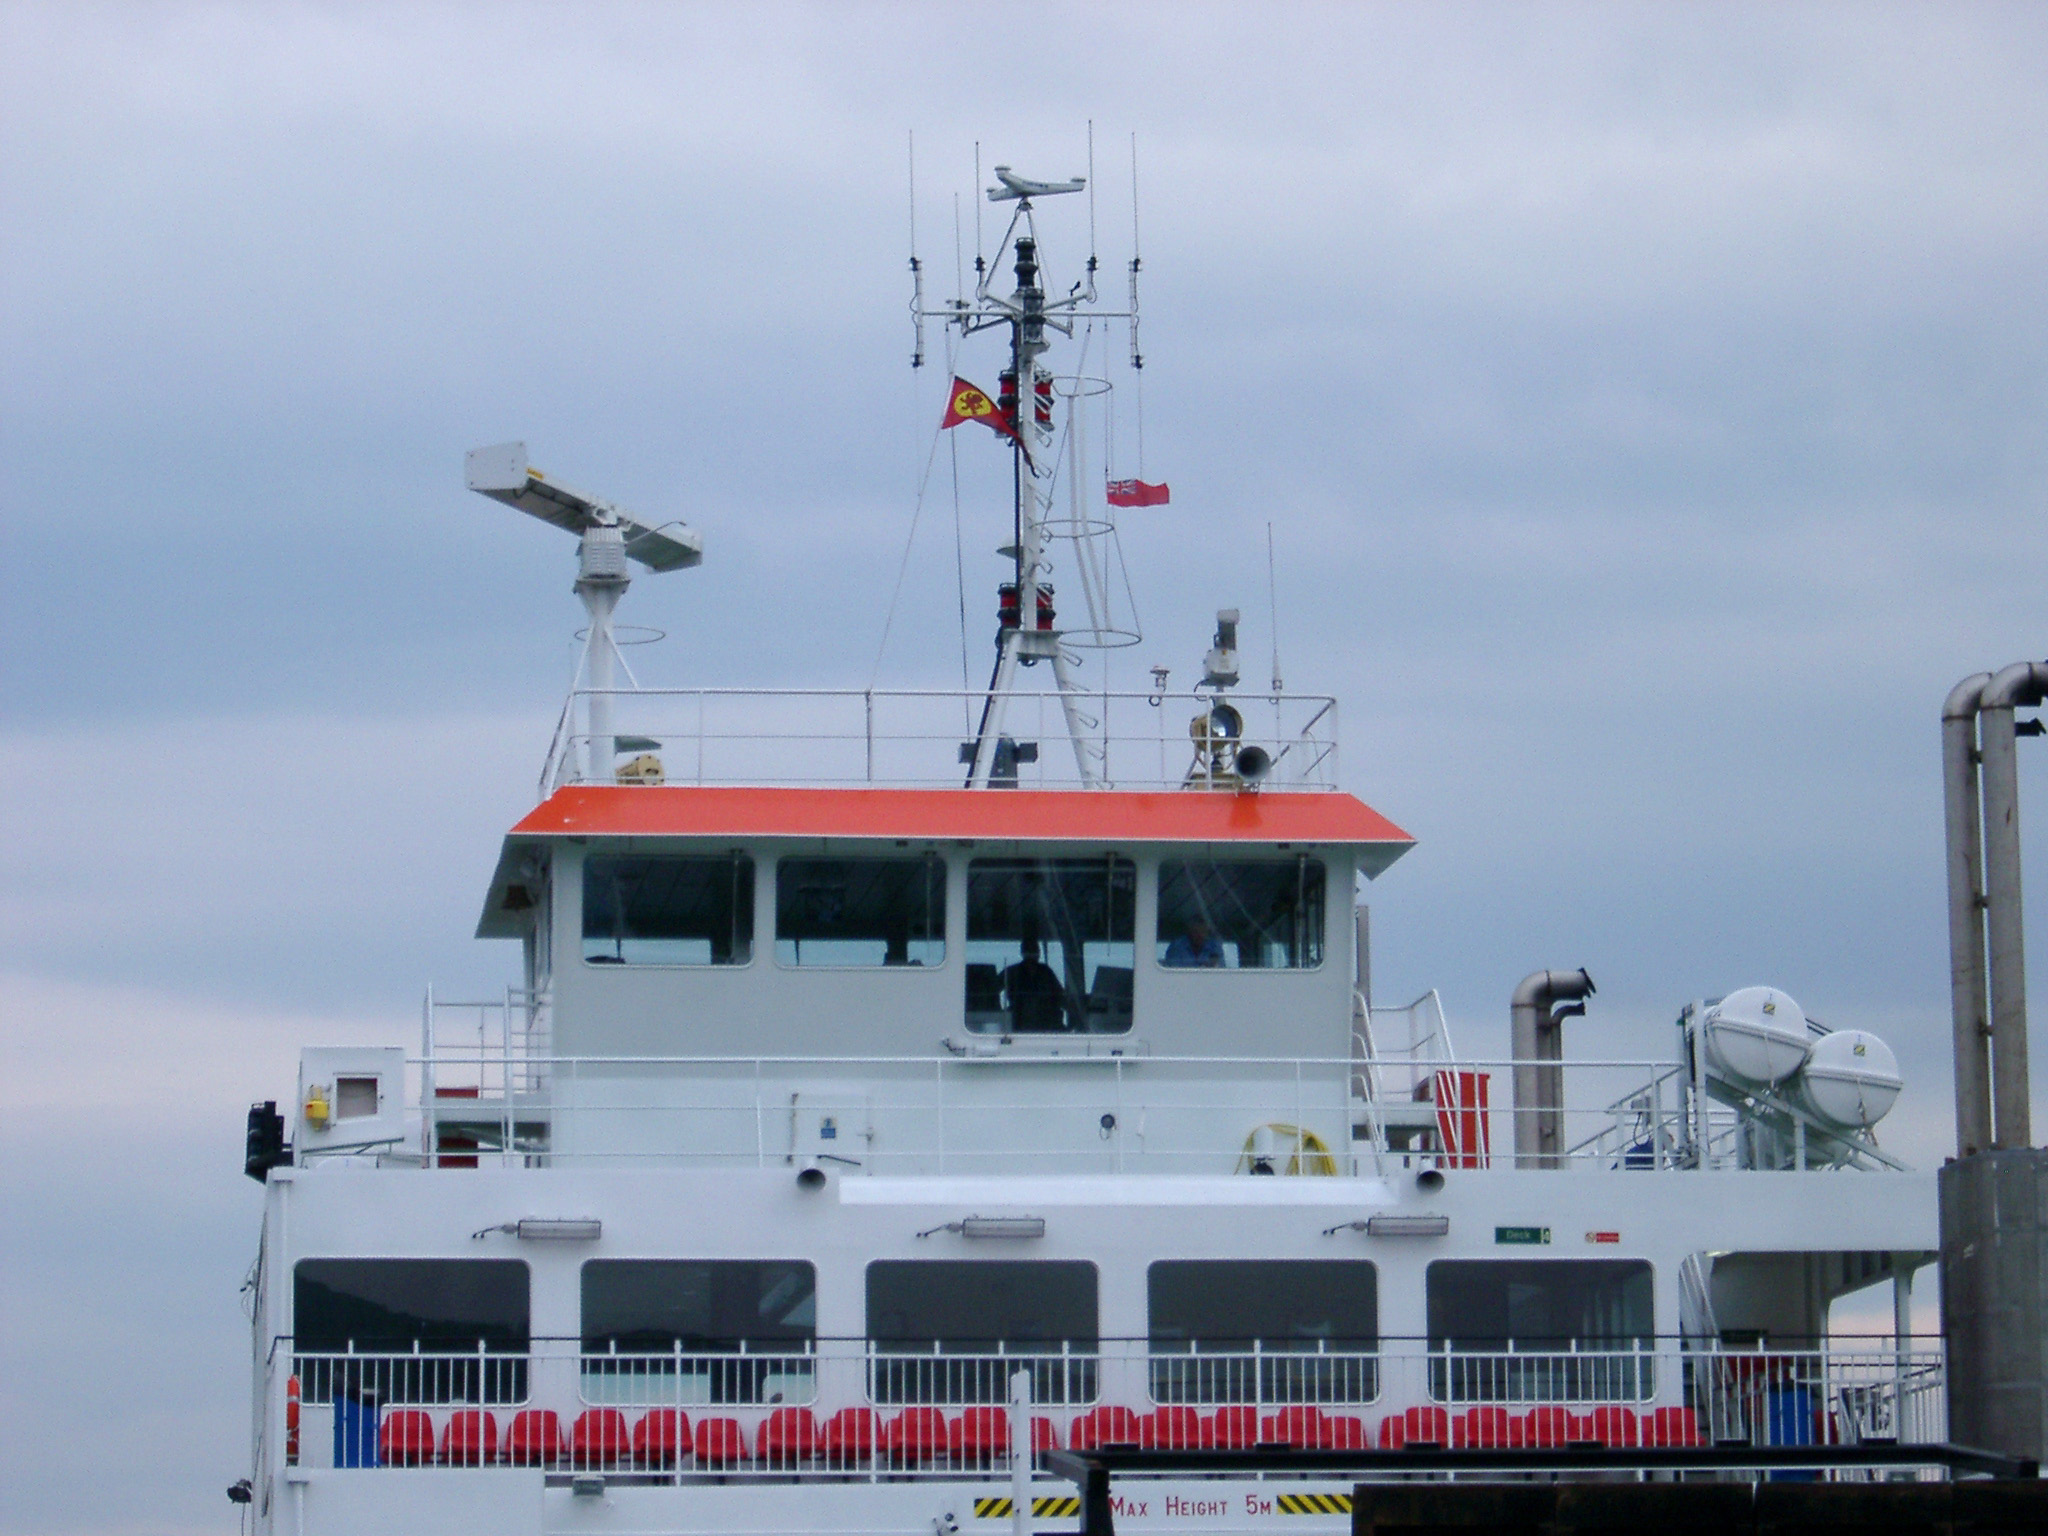 Bridge and navigation equipment of a ferry in the Hebrides, Scotland providing inter island transport for island hopping